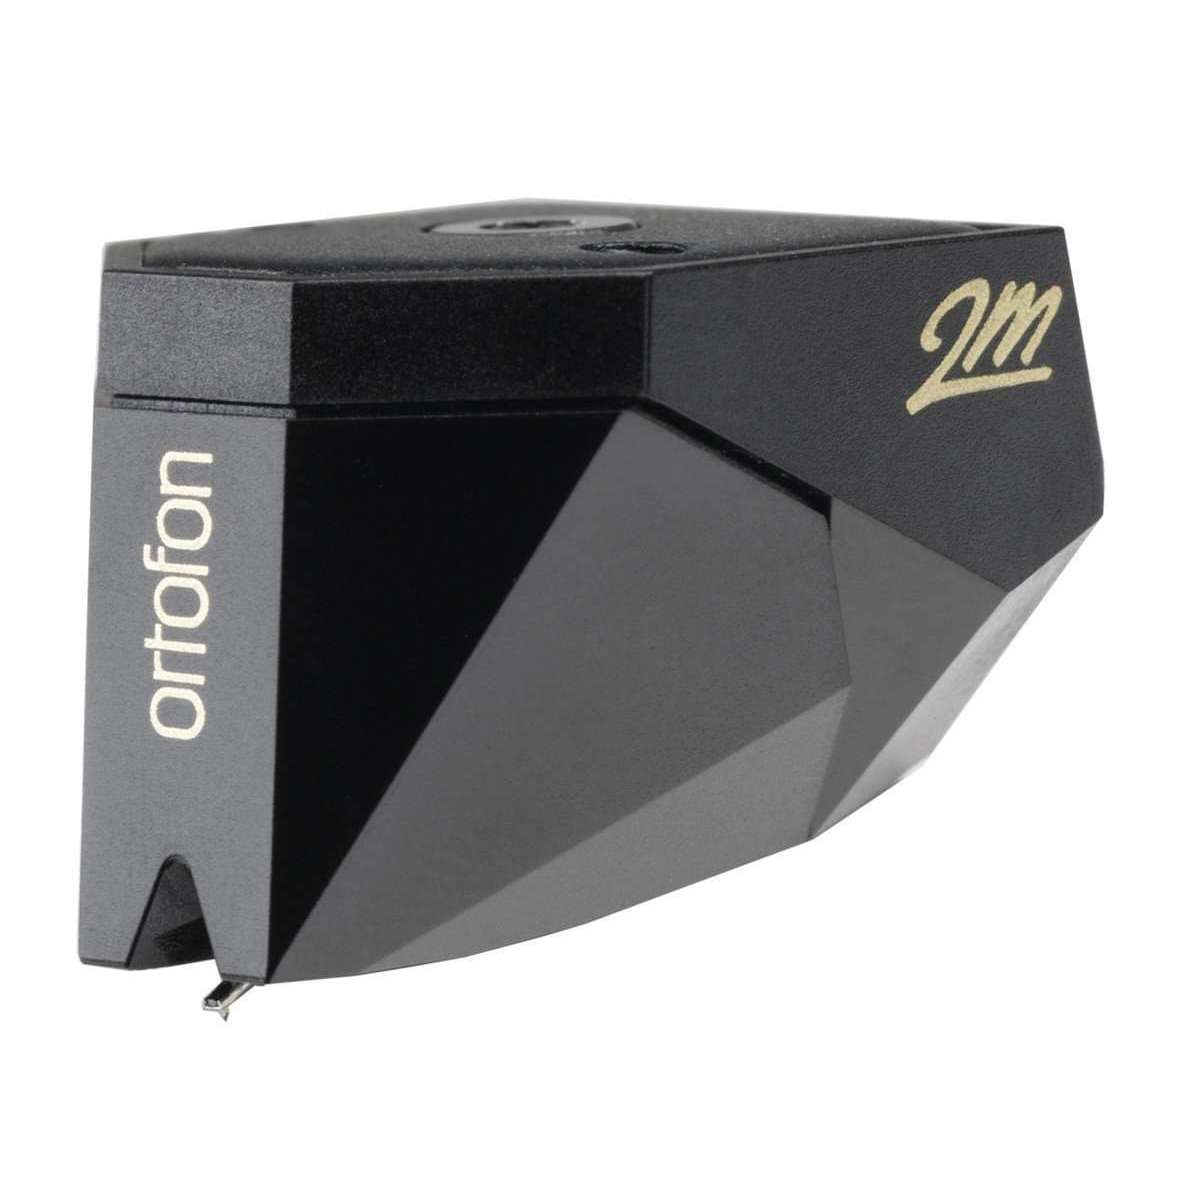 Ortofon 2M Black Moving Magnet Cartridge - Default Title - Call SpatialOnline 0345 557 7334